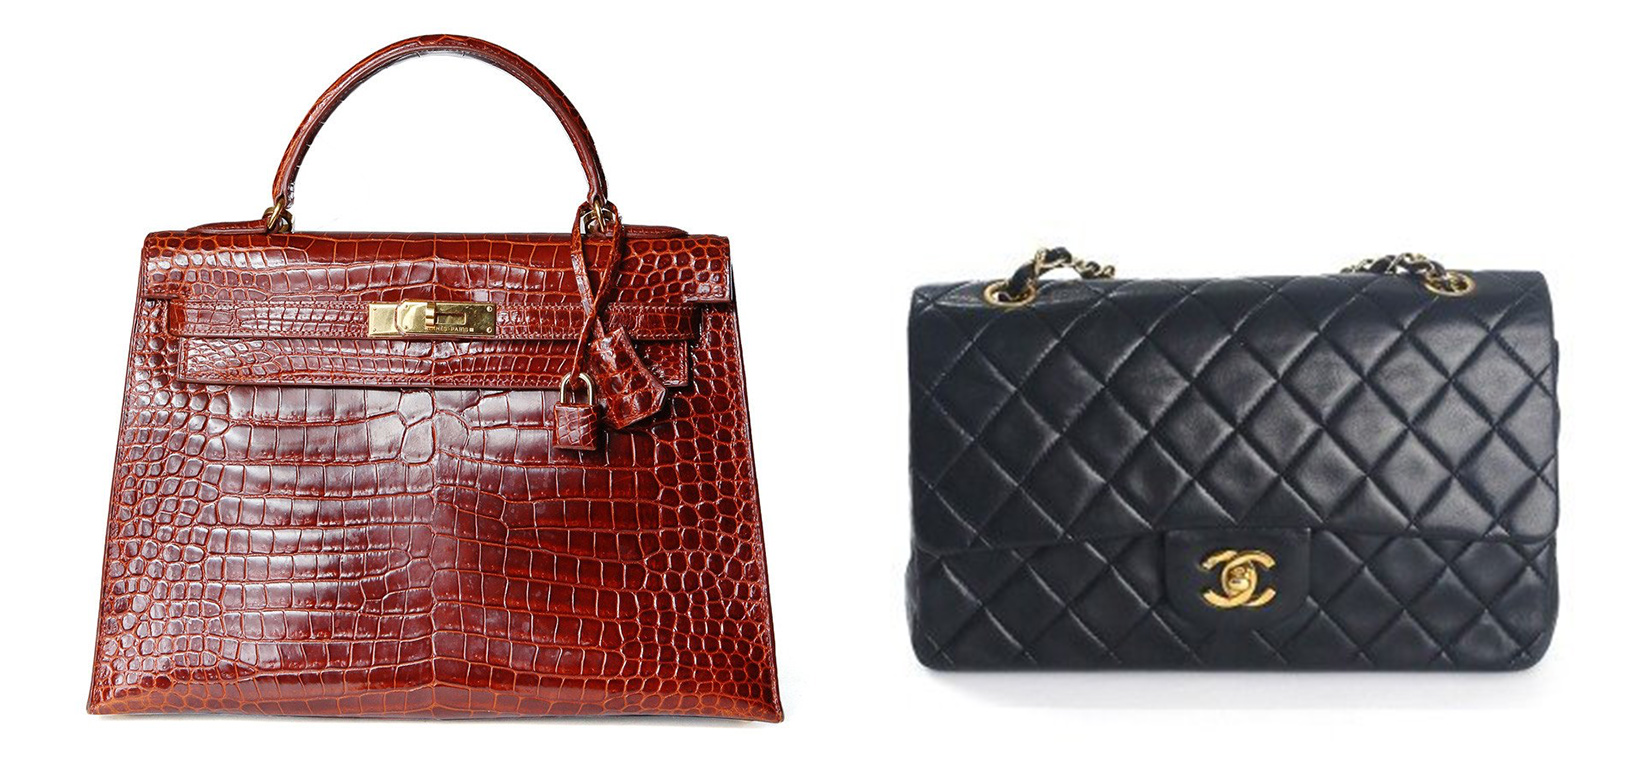 "4683c78560e5 The trouble with buying bags online, particularly a Birkin, Kelley, or  Chanel, is the F word. ""I can spot a fake a mile away,"" says Christos,  whose LA-based ..."